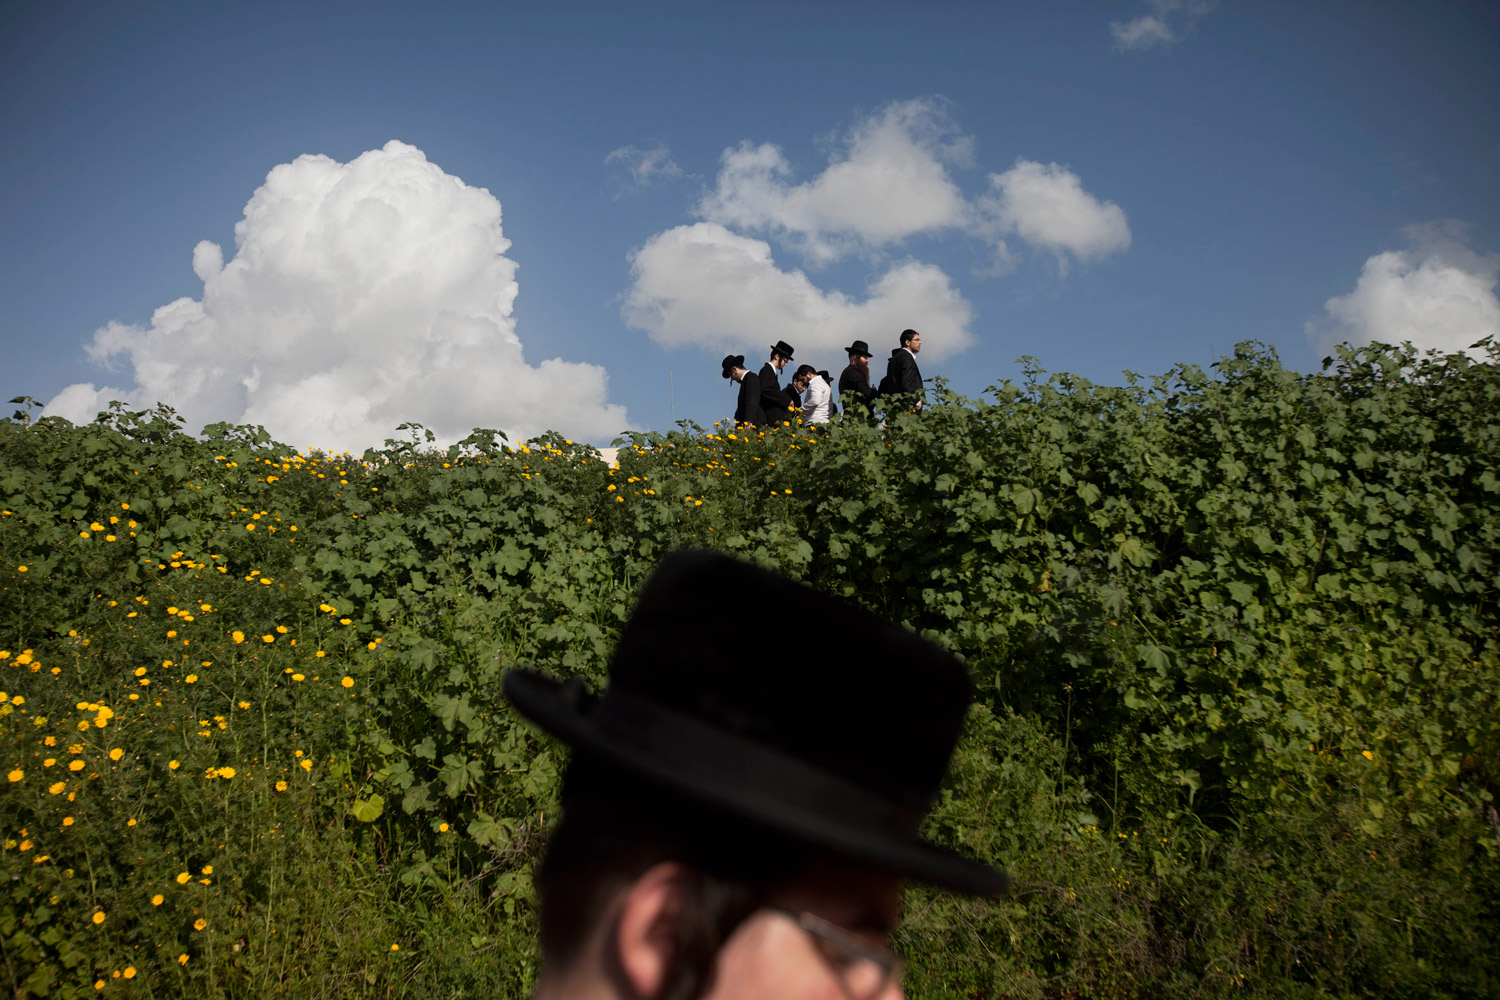 March 14, 2012. Ultra-Orthodox Jews attend the funeral of Rabbi Moshe Yehoshua Hager, leader of the hassidic sect Vizhnitz in Israel, in Bnei Brak, Israel. Rabbi Moshe Yehoshua Hager was 95.